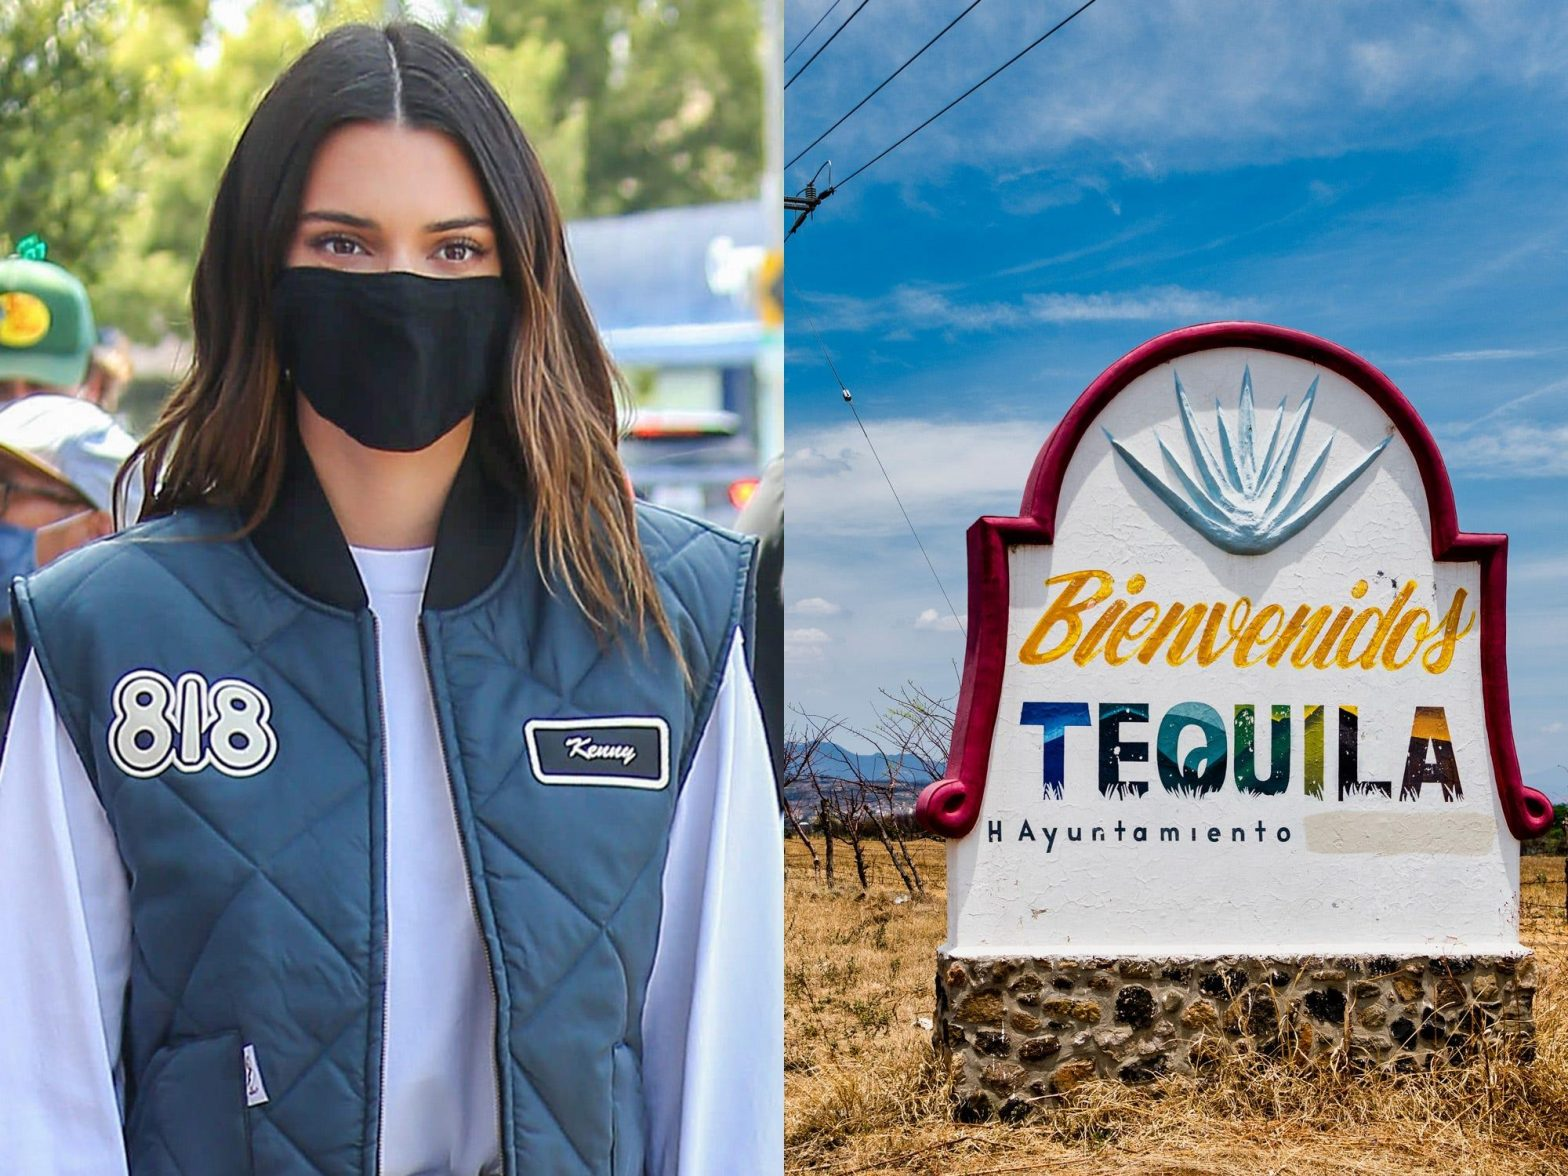 celebrities-like-kendall-jenner-have-been-criticized-for-selling-tequila,-but-a-mexican-tequila-maker-…